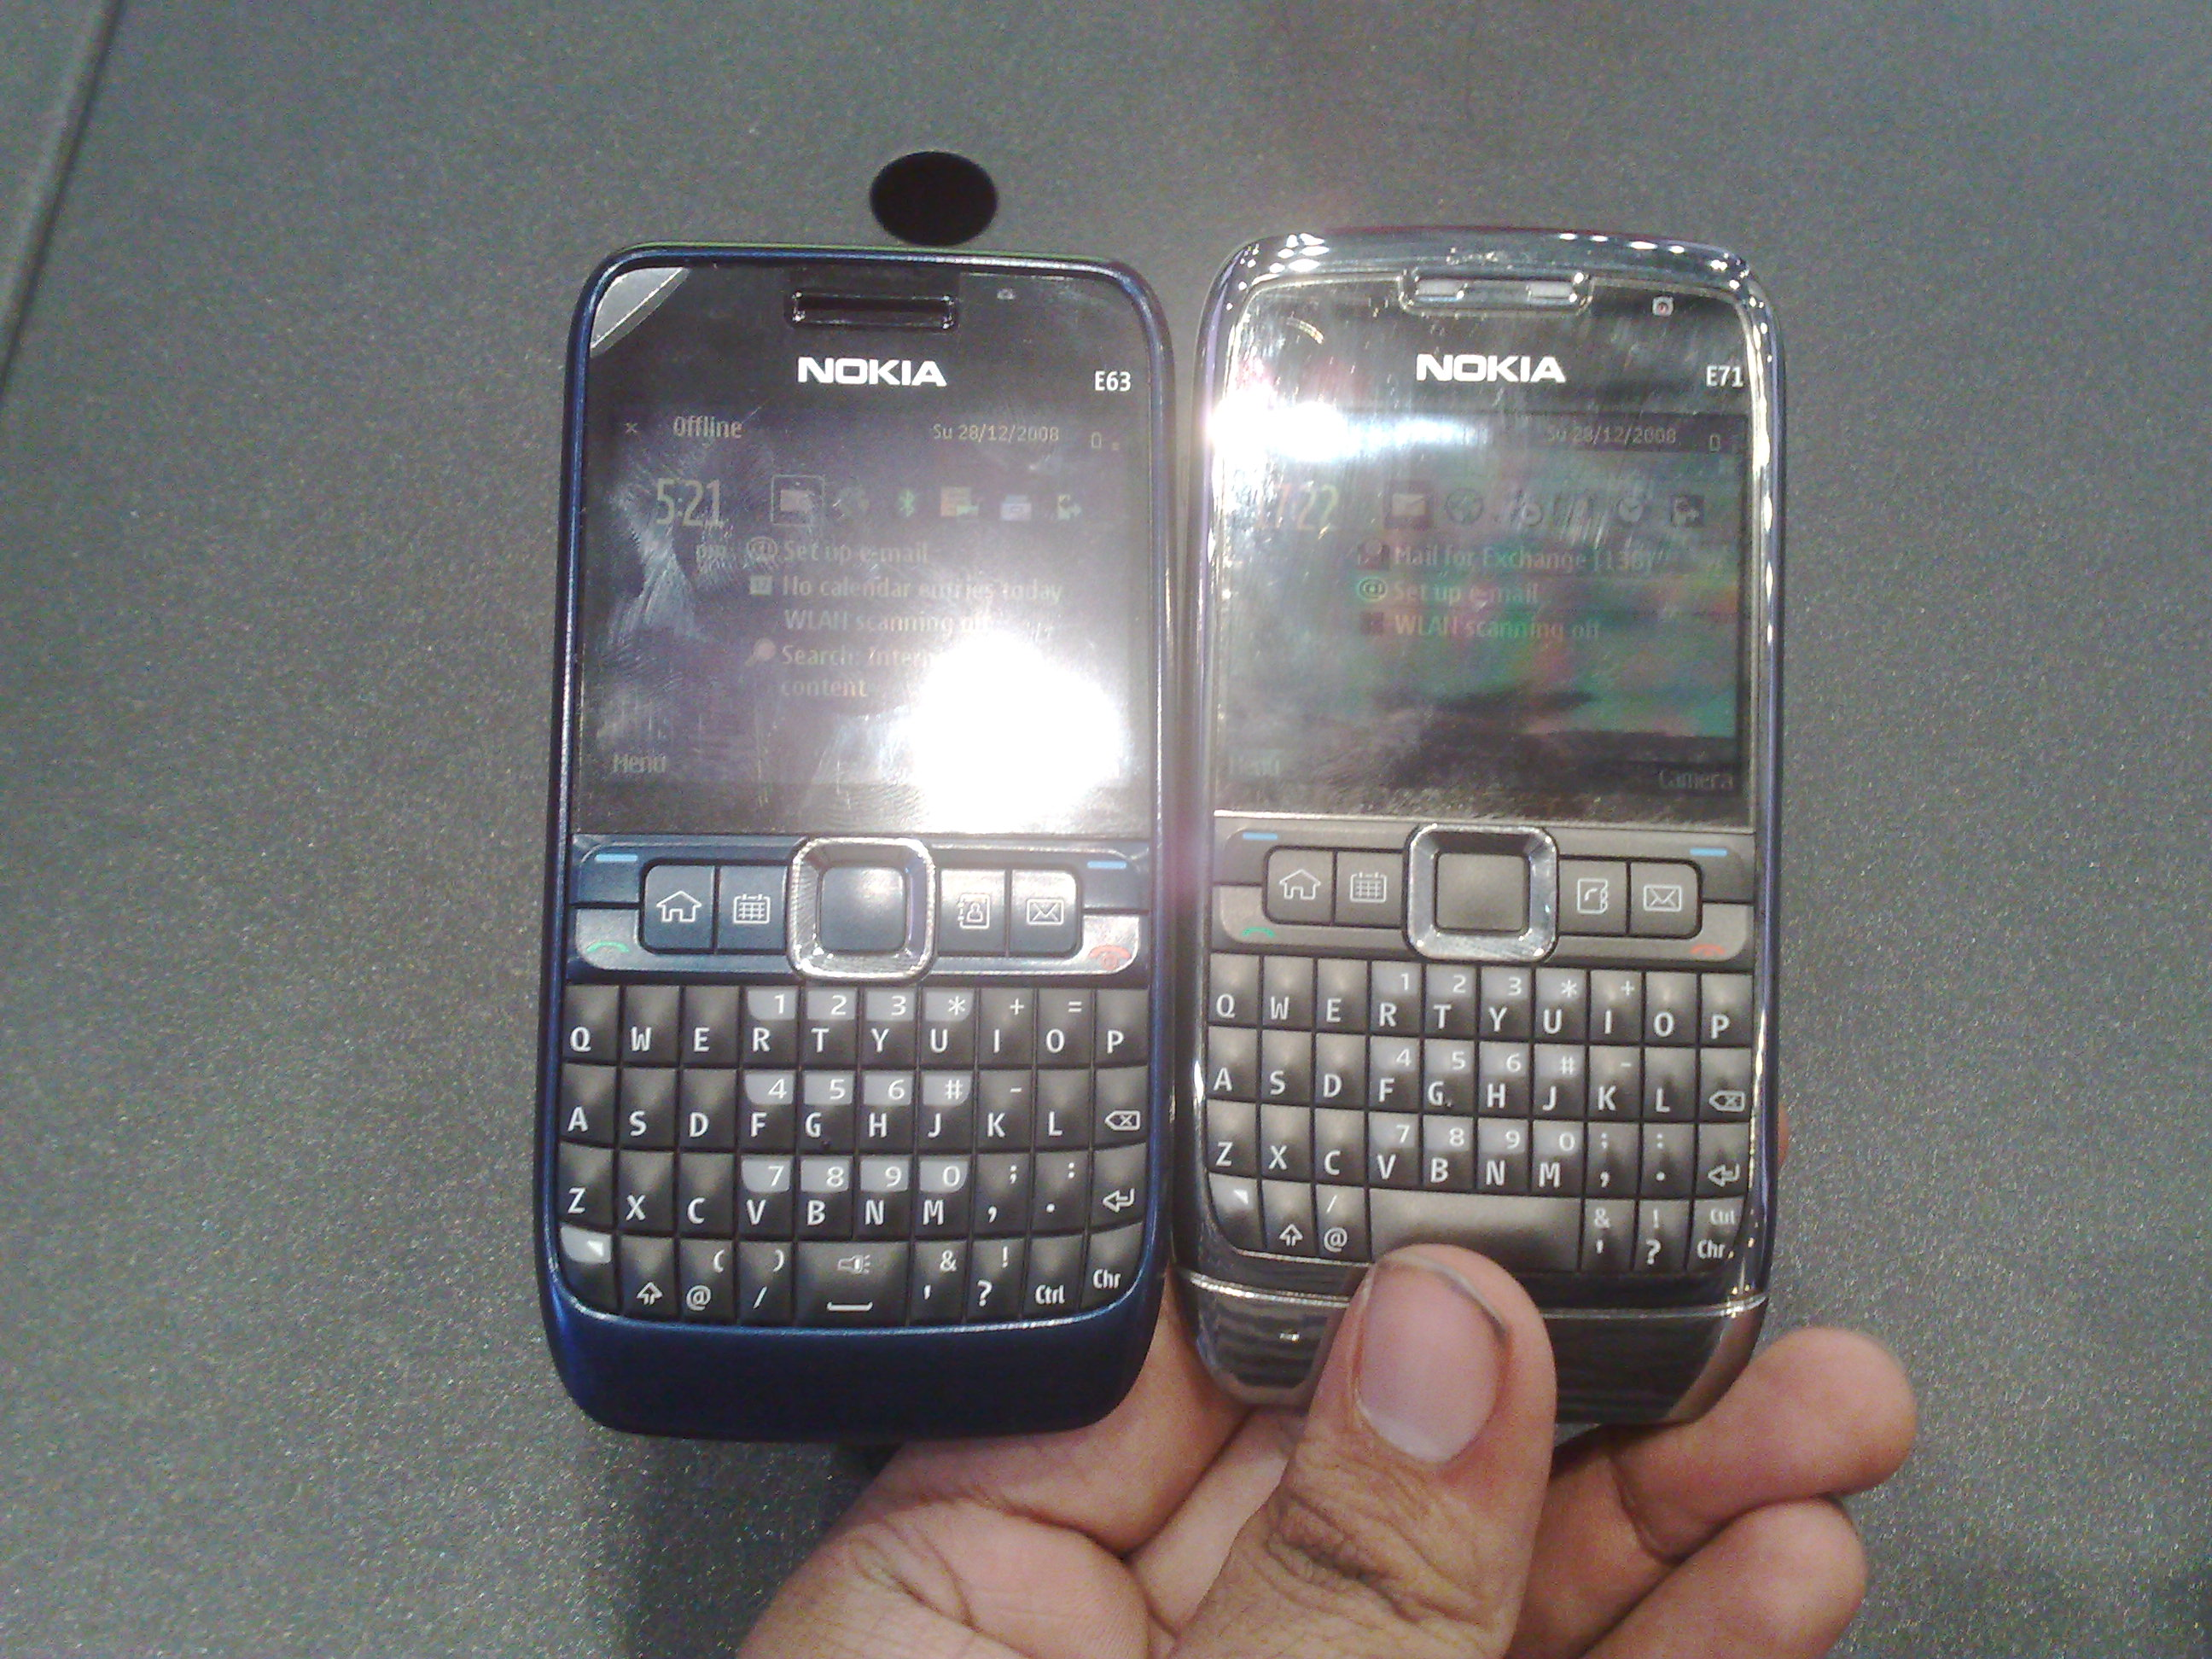 Nokia E63 vs E71 in Pictures nokia e63 vs e71 – Fone Arena - The ...